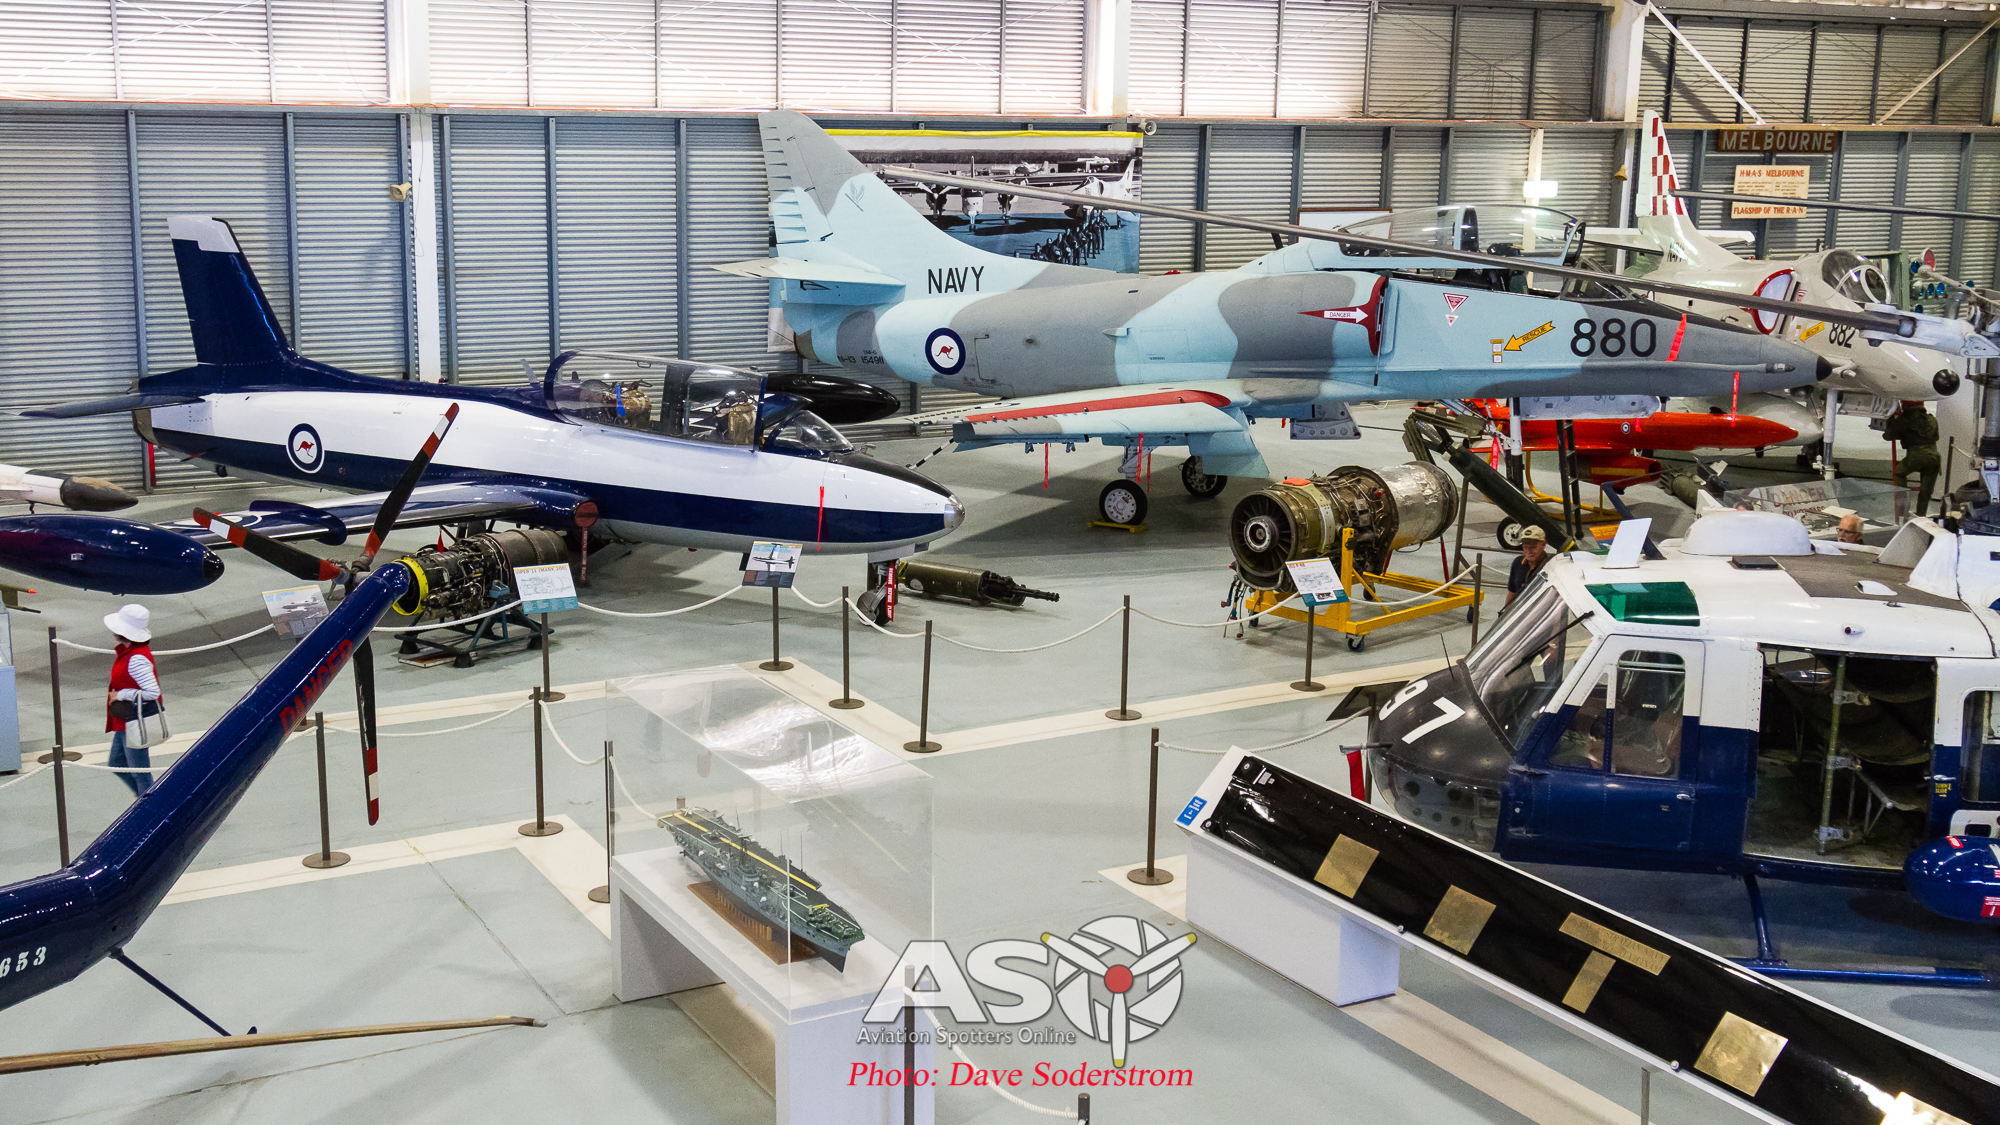 Fleet Air Arm Museum, Nowra. Telling the story of the Royal Australian Navy